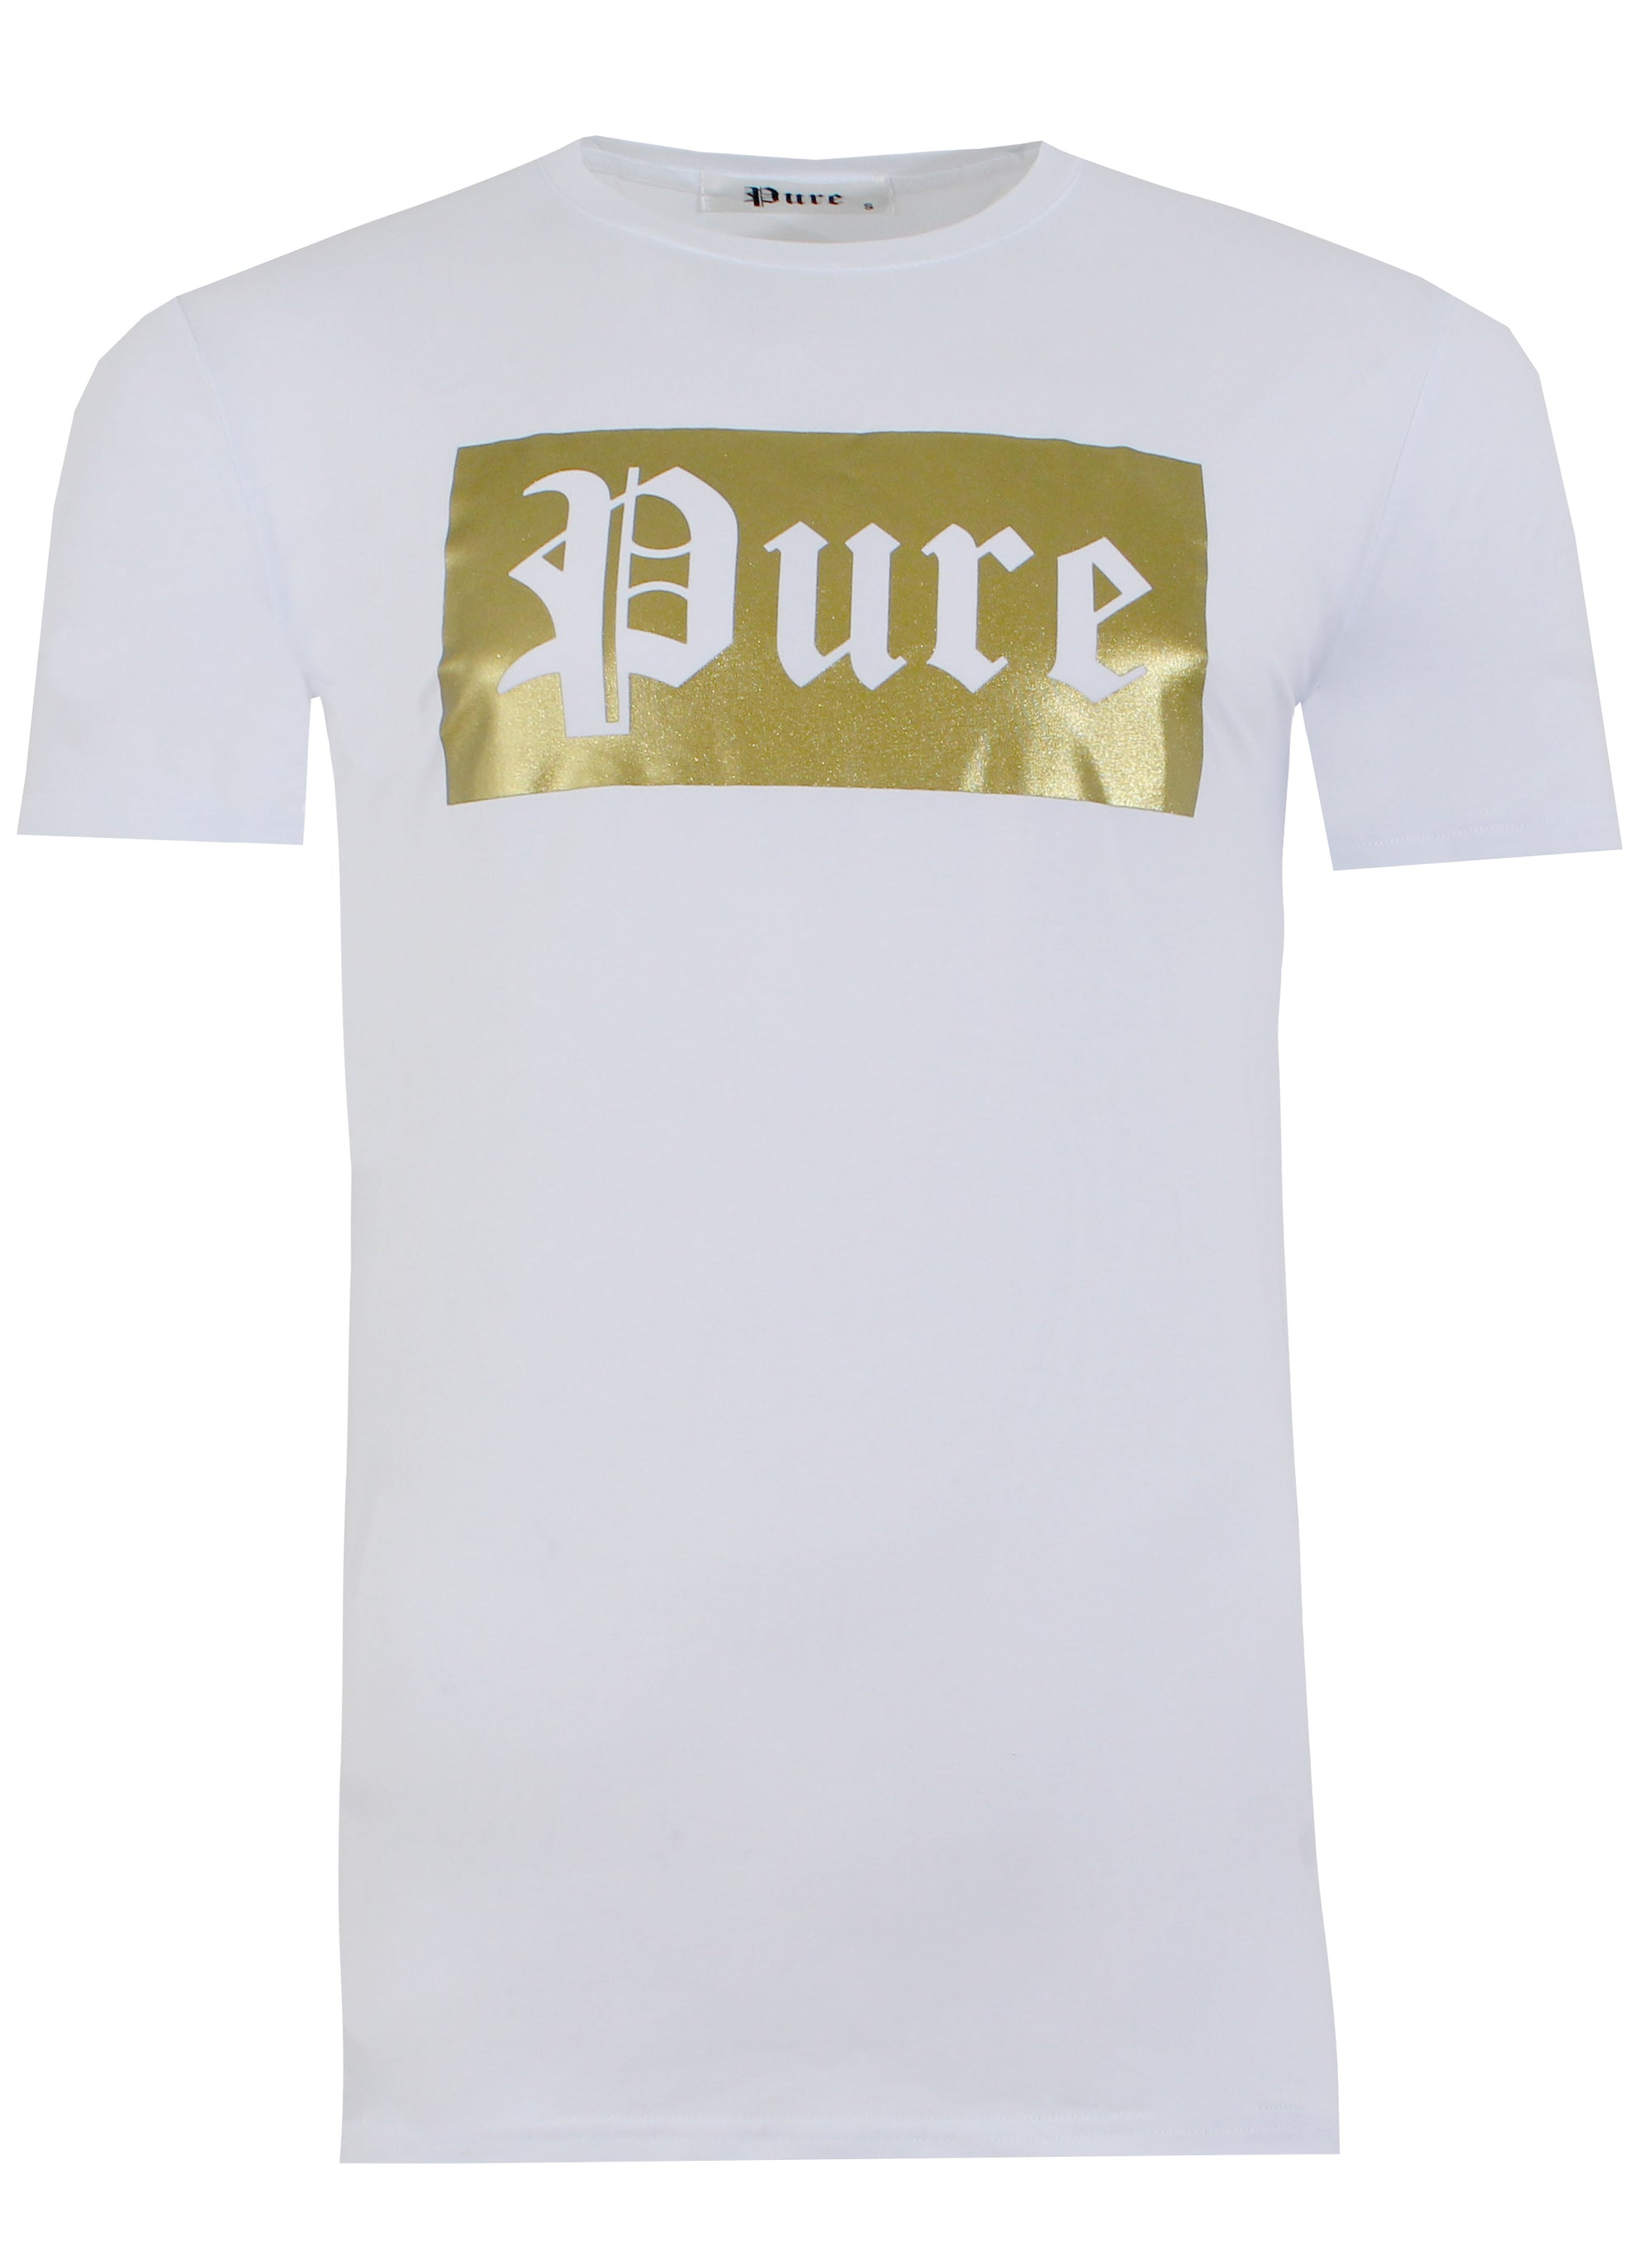 New 2021 Stretch Pure Tee with Block Logo